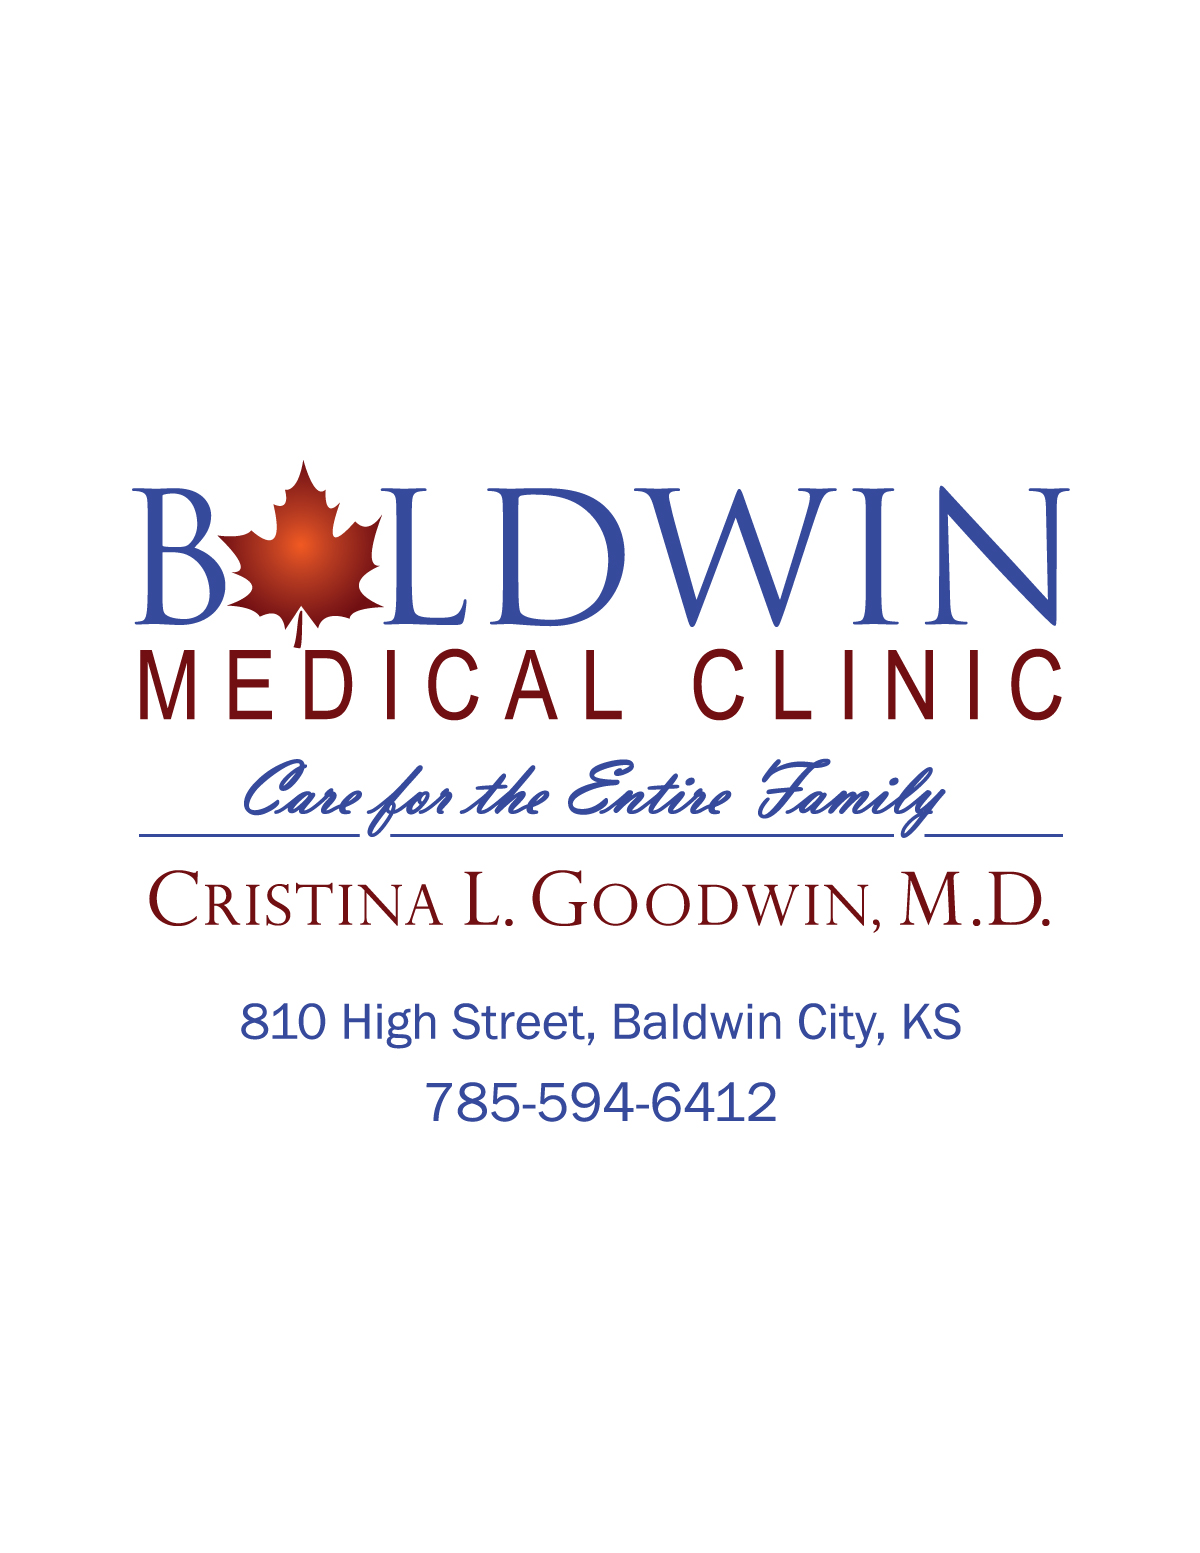 Baldwin Medical Clinic